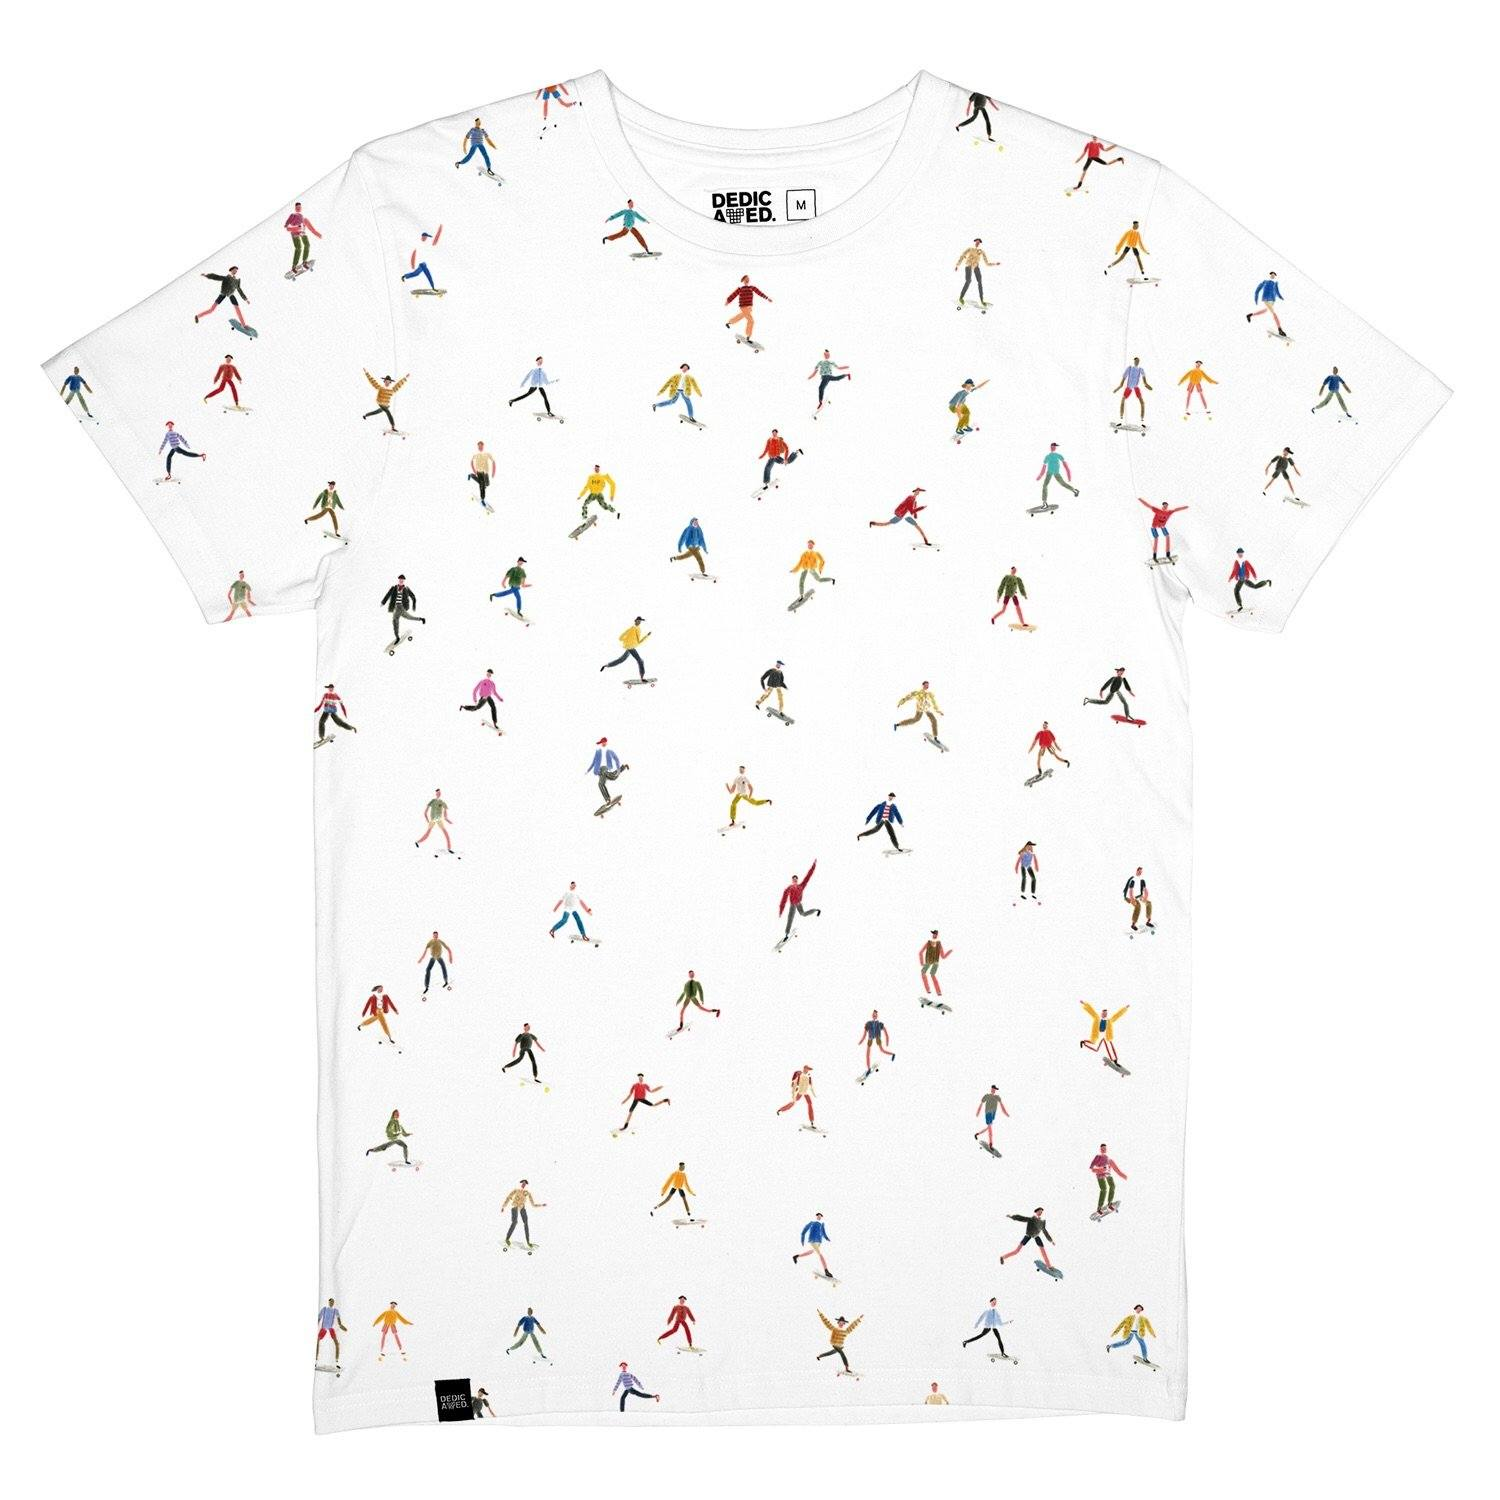 Stockholm: Skaters T-Shirt DEDICATED - der ZEITGEIST